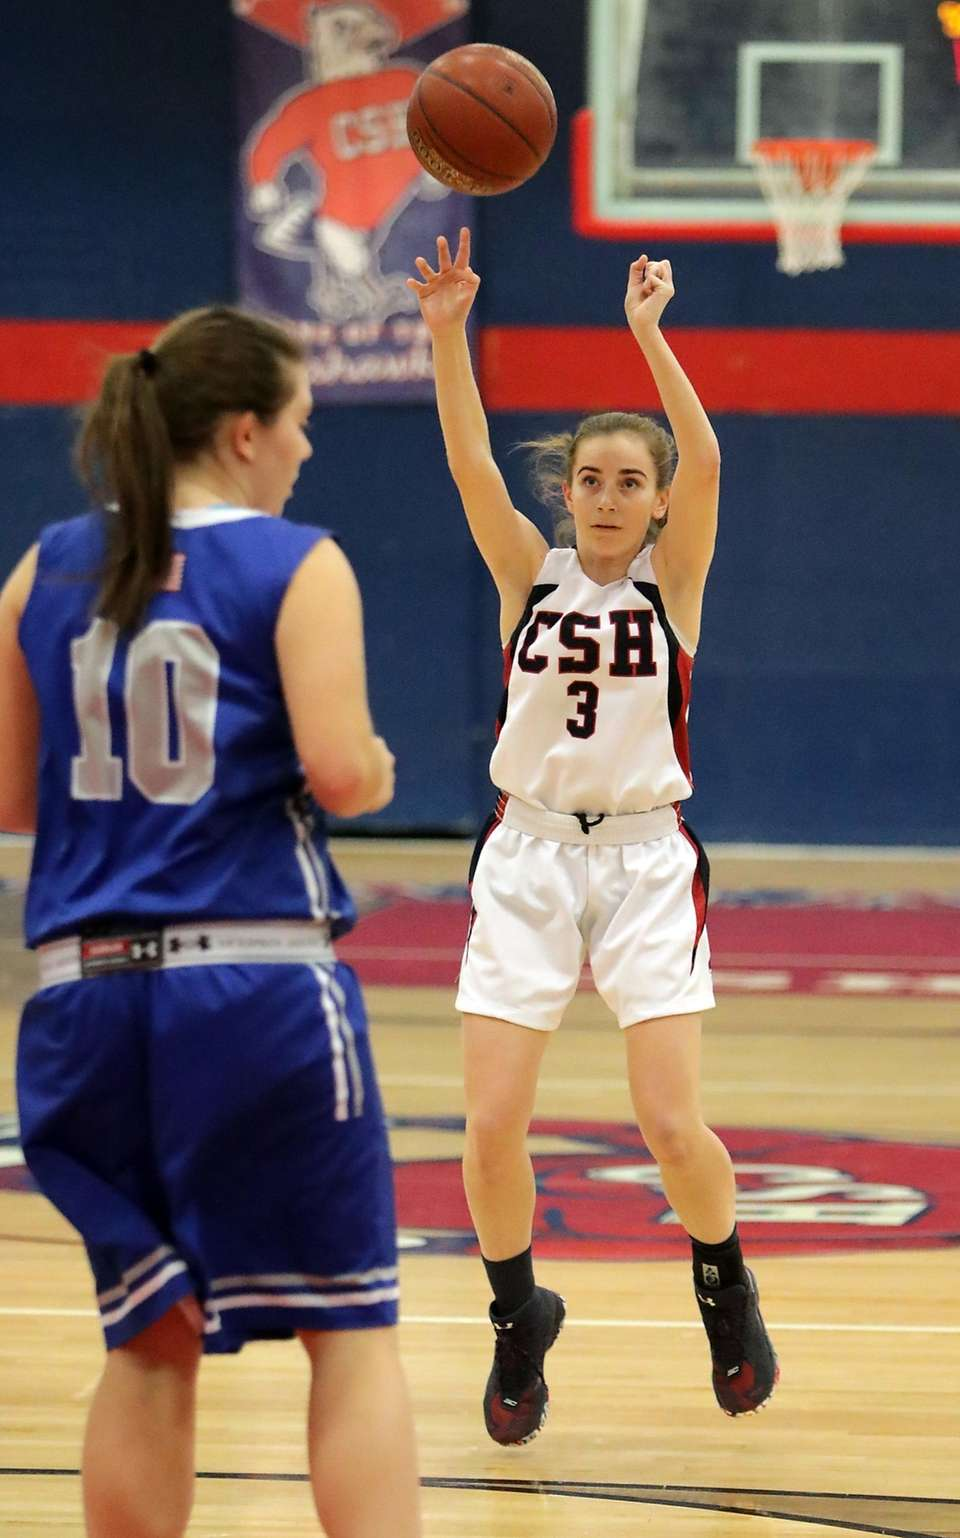 Cold Spring Harbor's Katherine Buonfiglio shoots for three